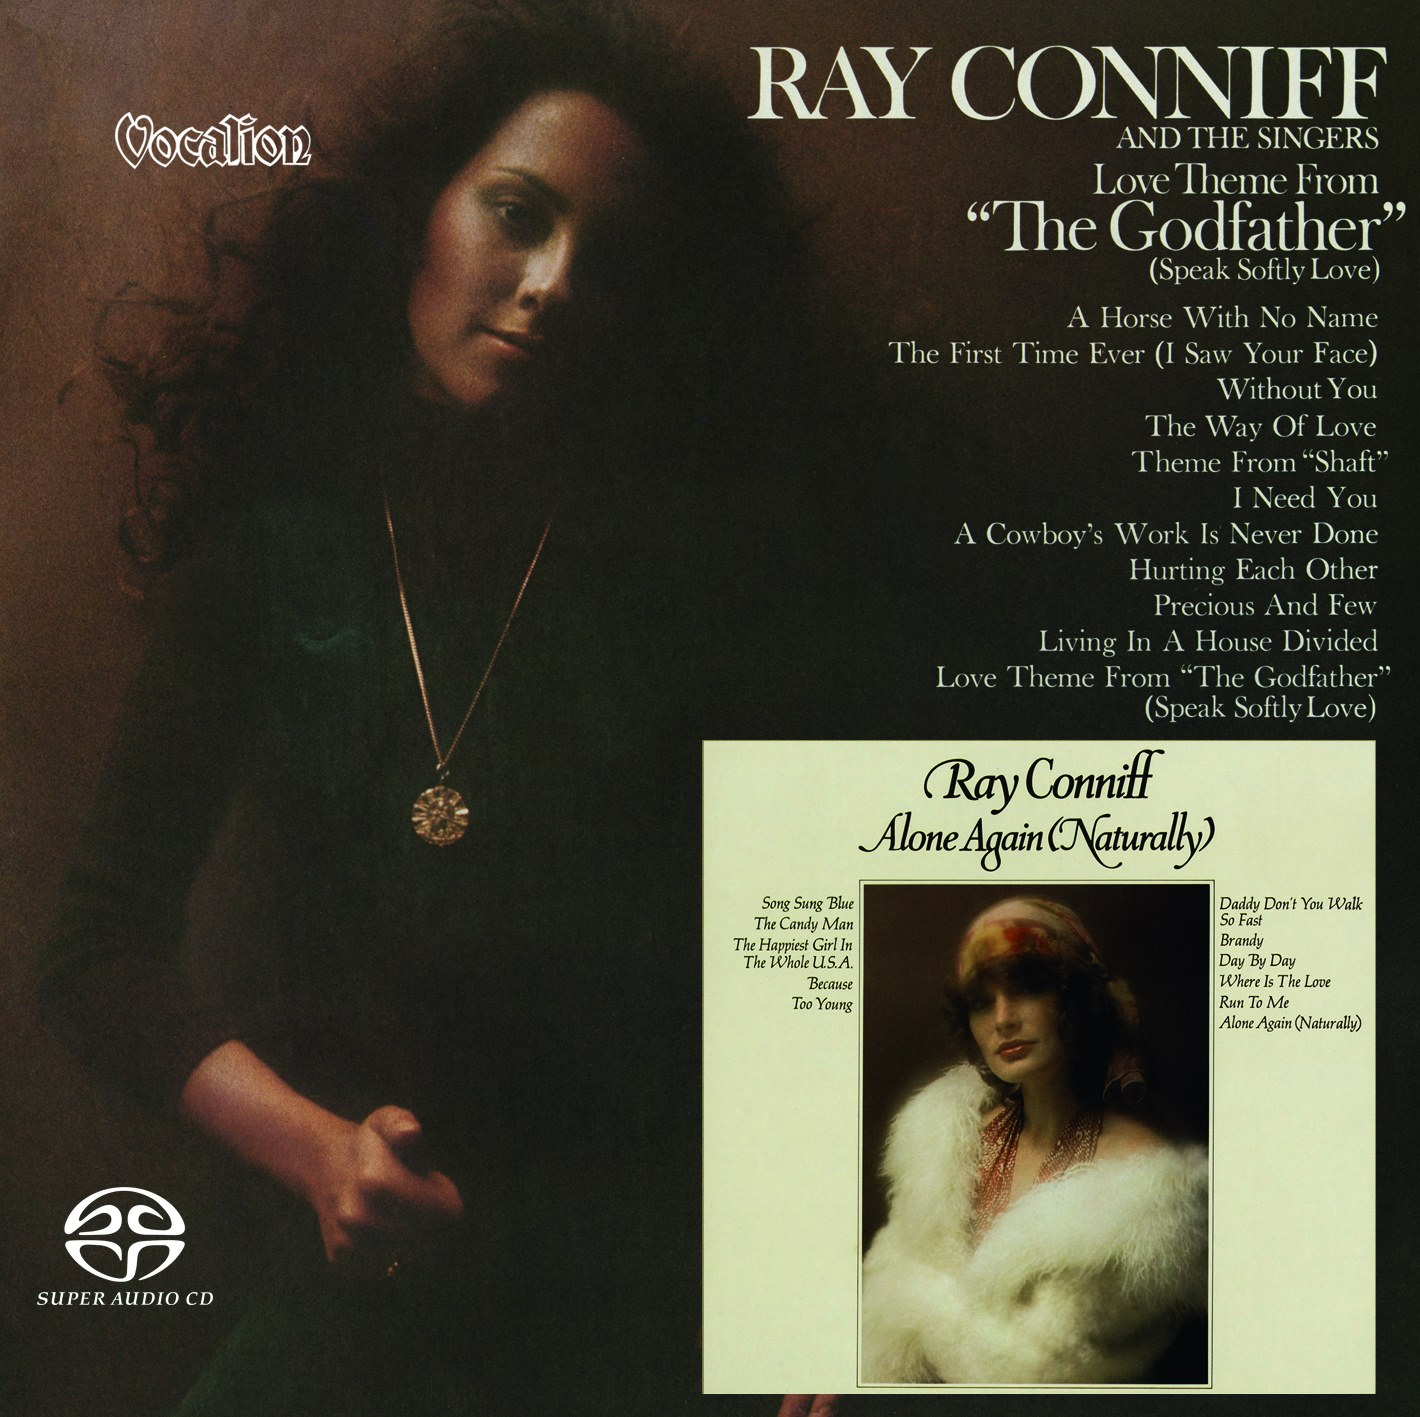 new Ray Conniff SACD: Alone Again (Naturally) & Love Theme from The Godfather